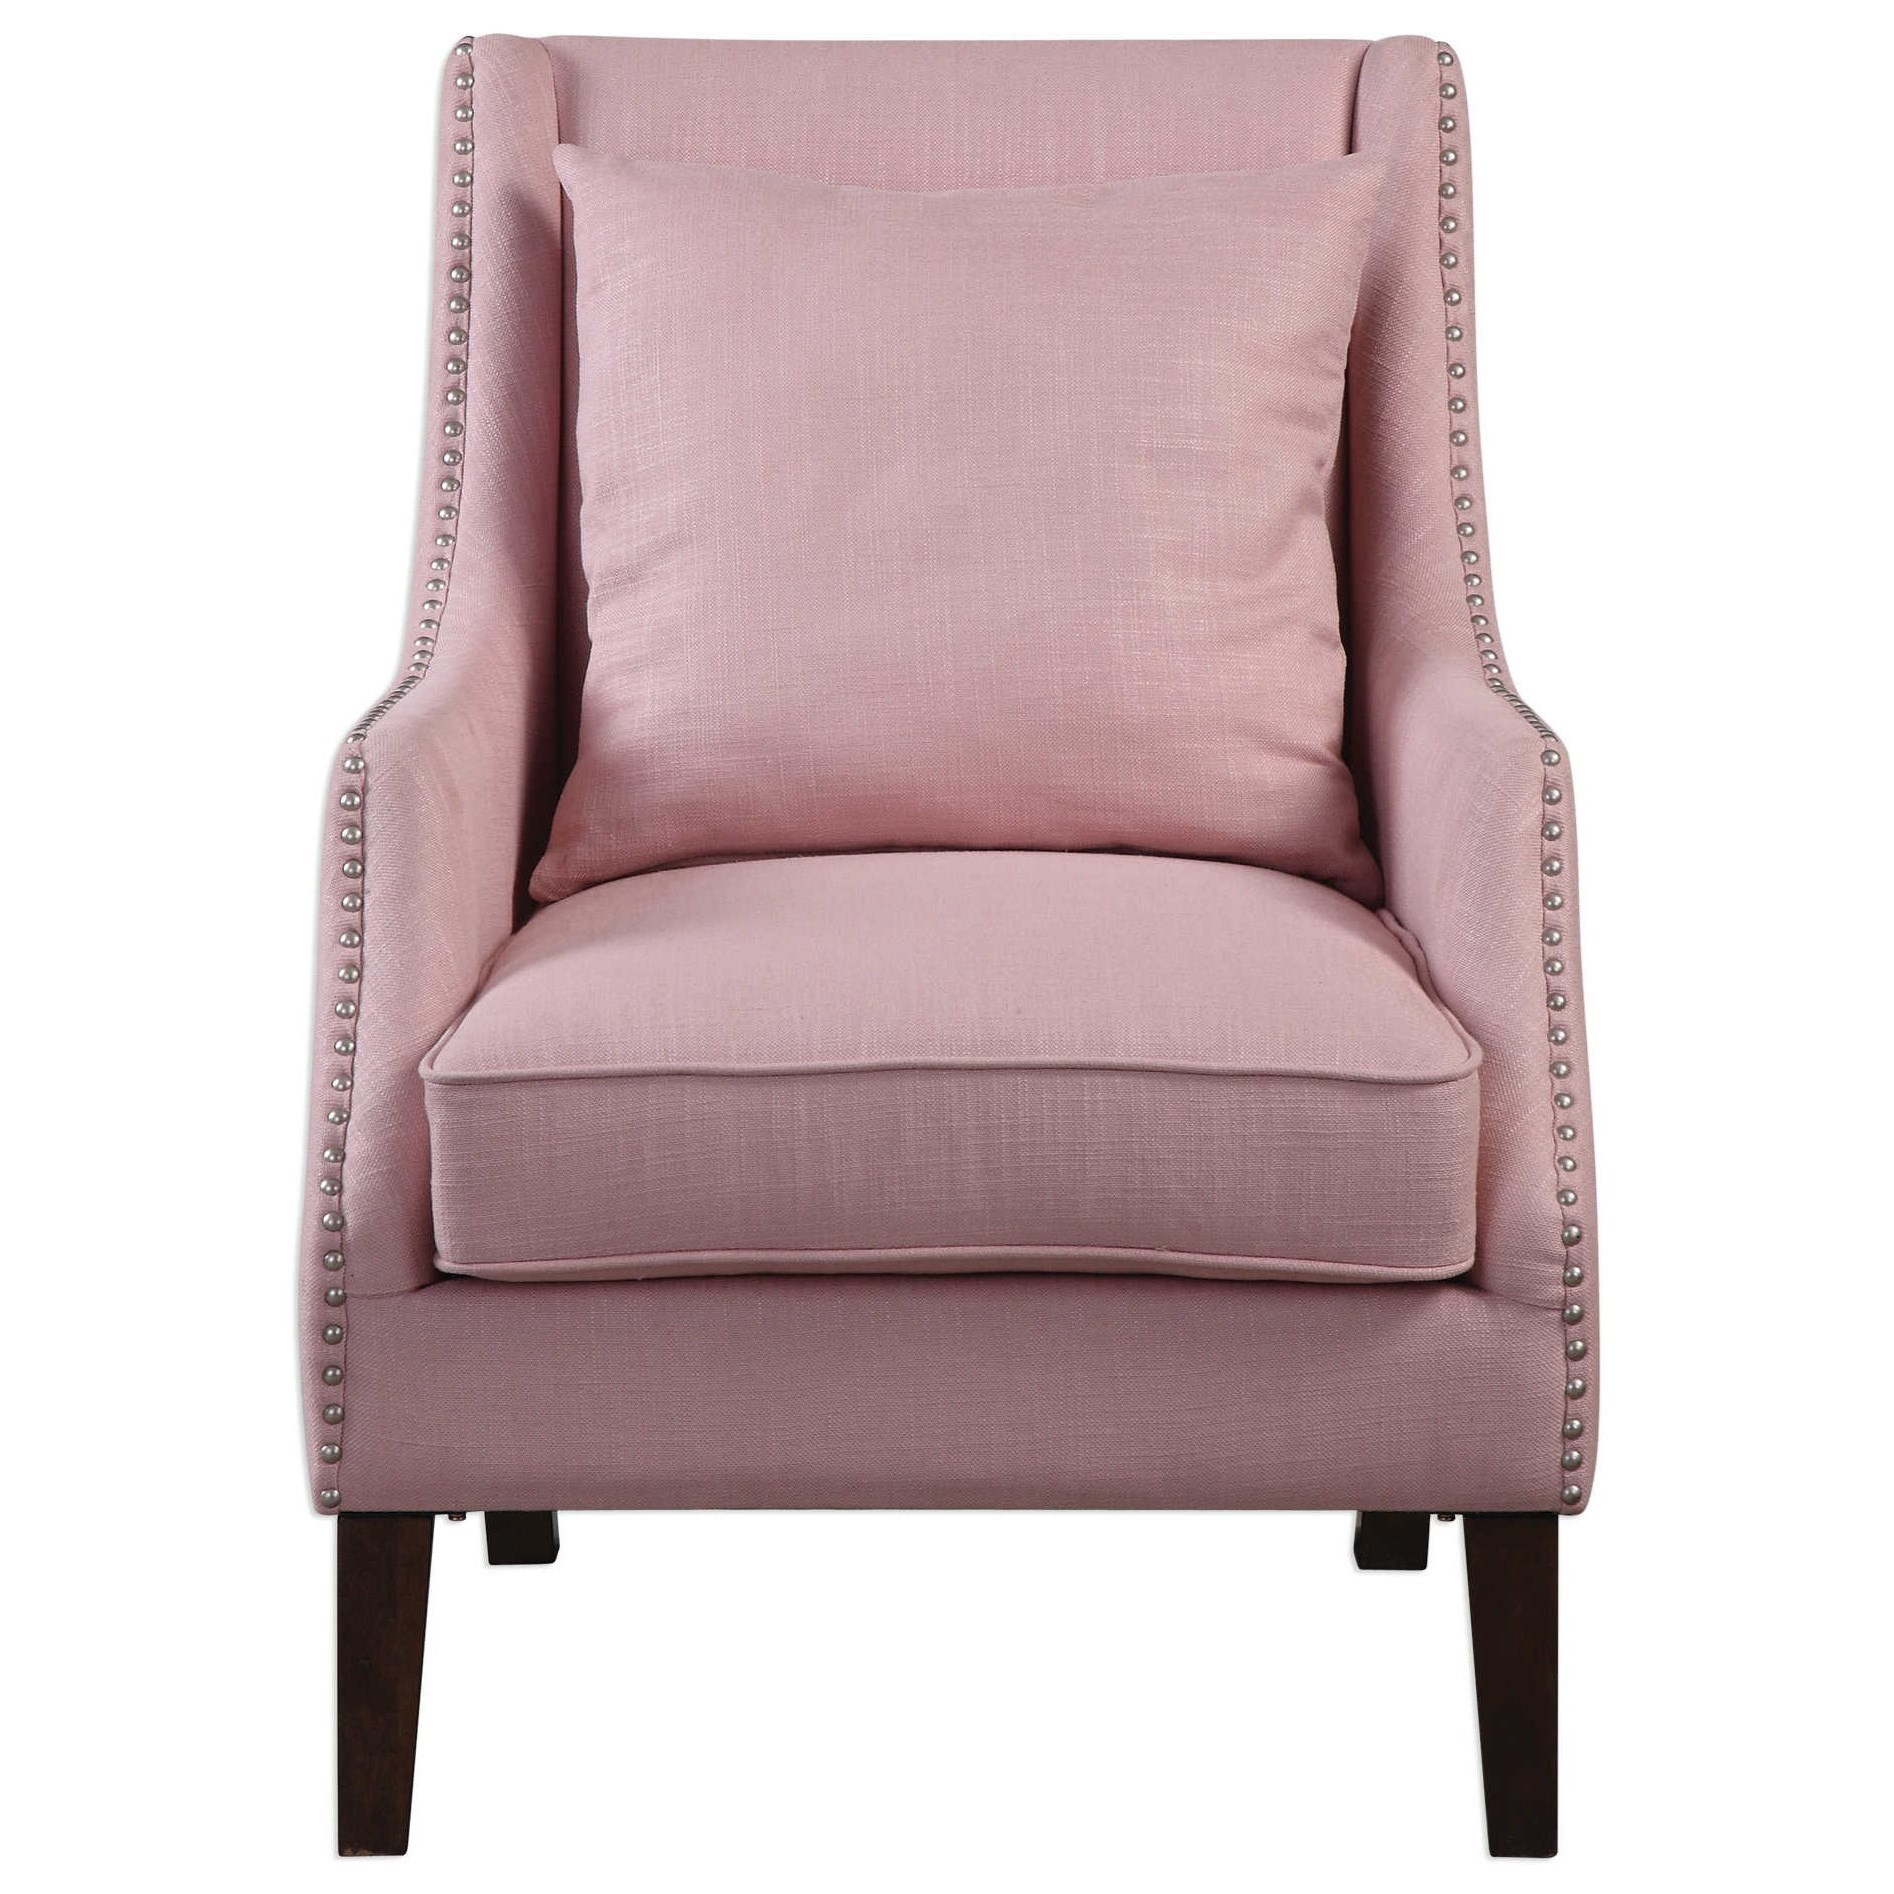 Accent Furniture - Accent Chairs Arieat Pink Armchair by Uttermost